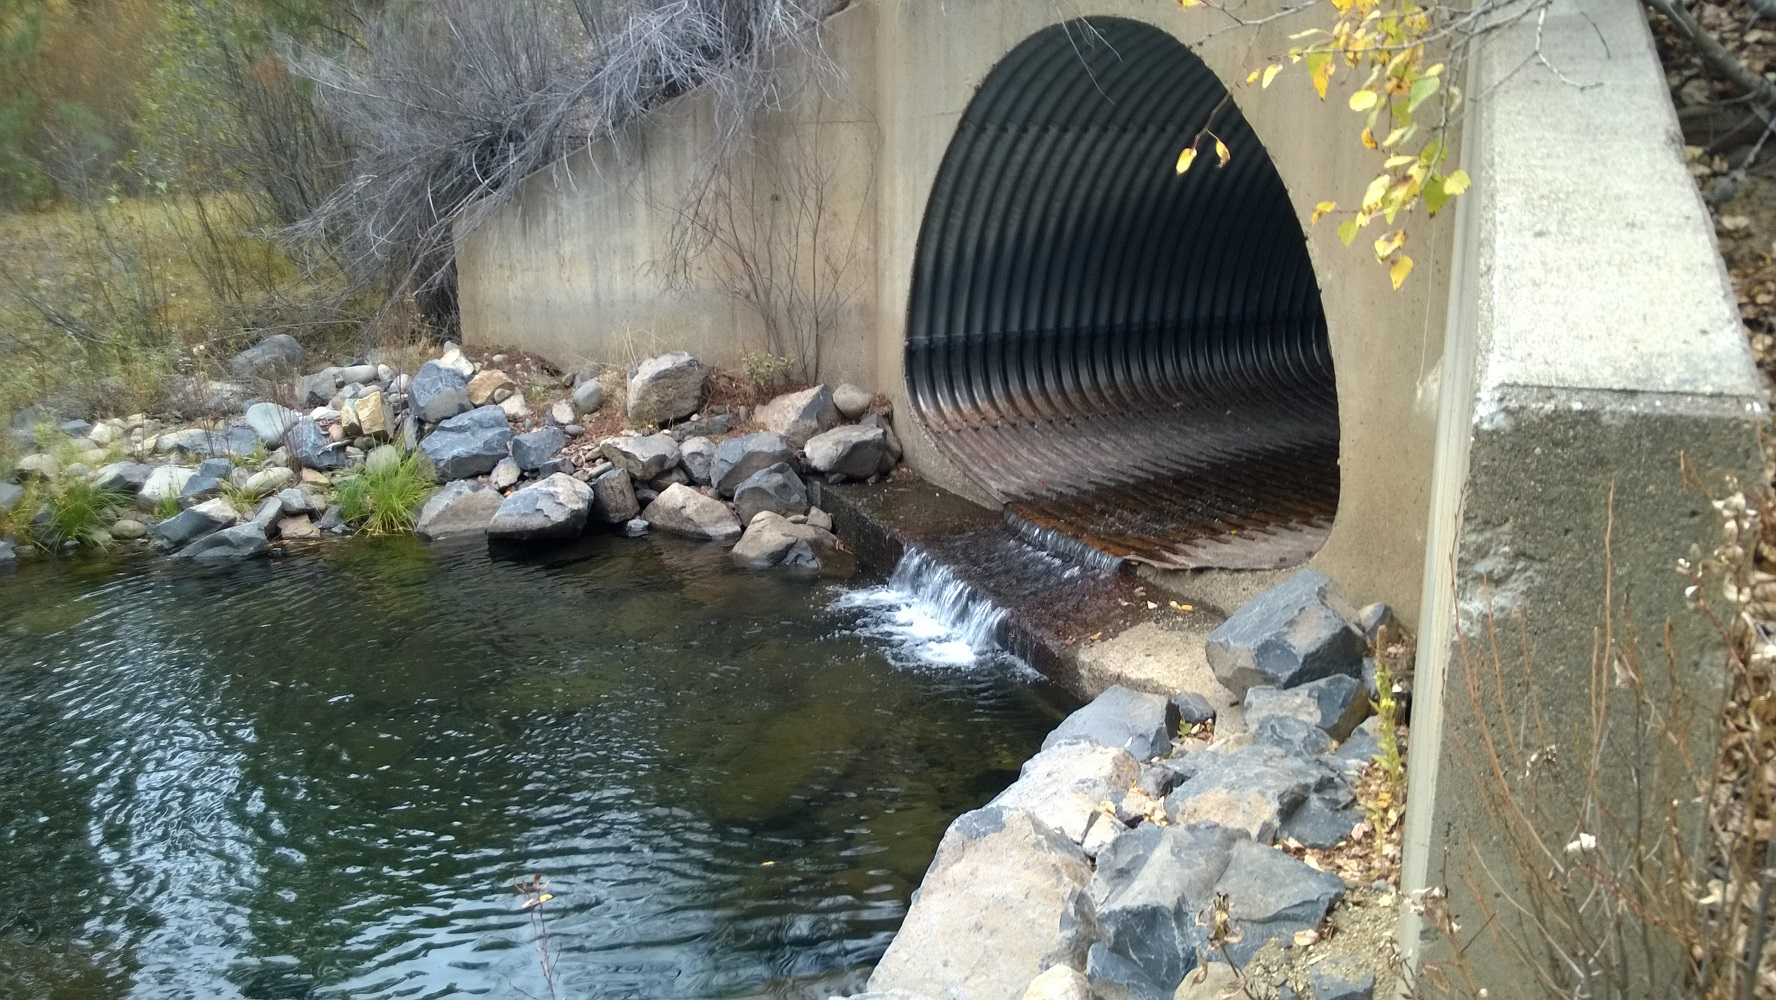 An excavated pool on Upper Indian Creek, above Antelope Lake, created to aid the passage of spawning wild trout that migrate up from the lake; many road crossings and other culverts across the watershed are still in need of retrofit to allow such passage.